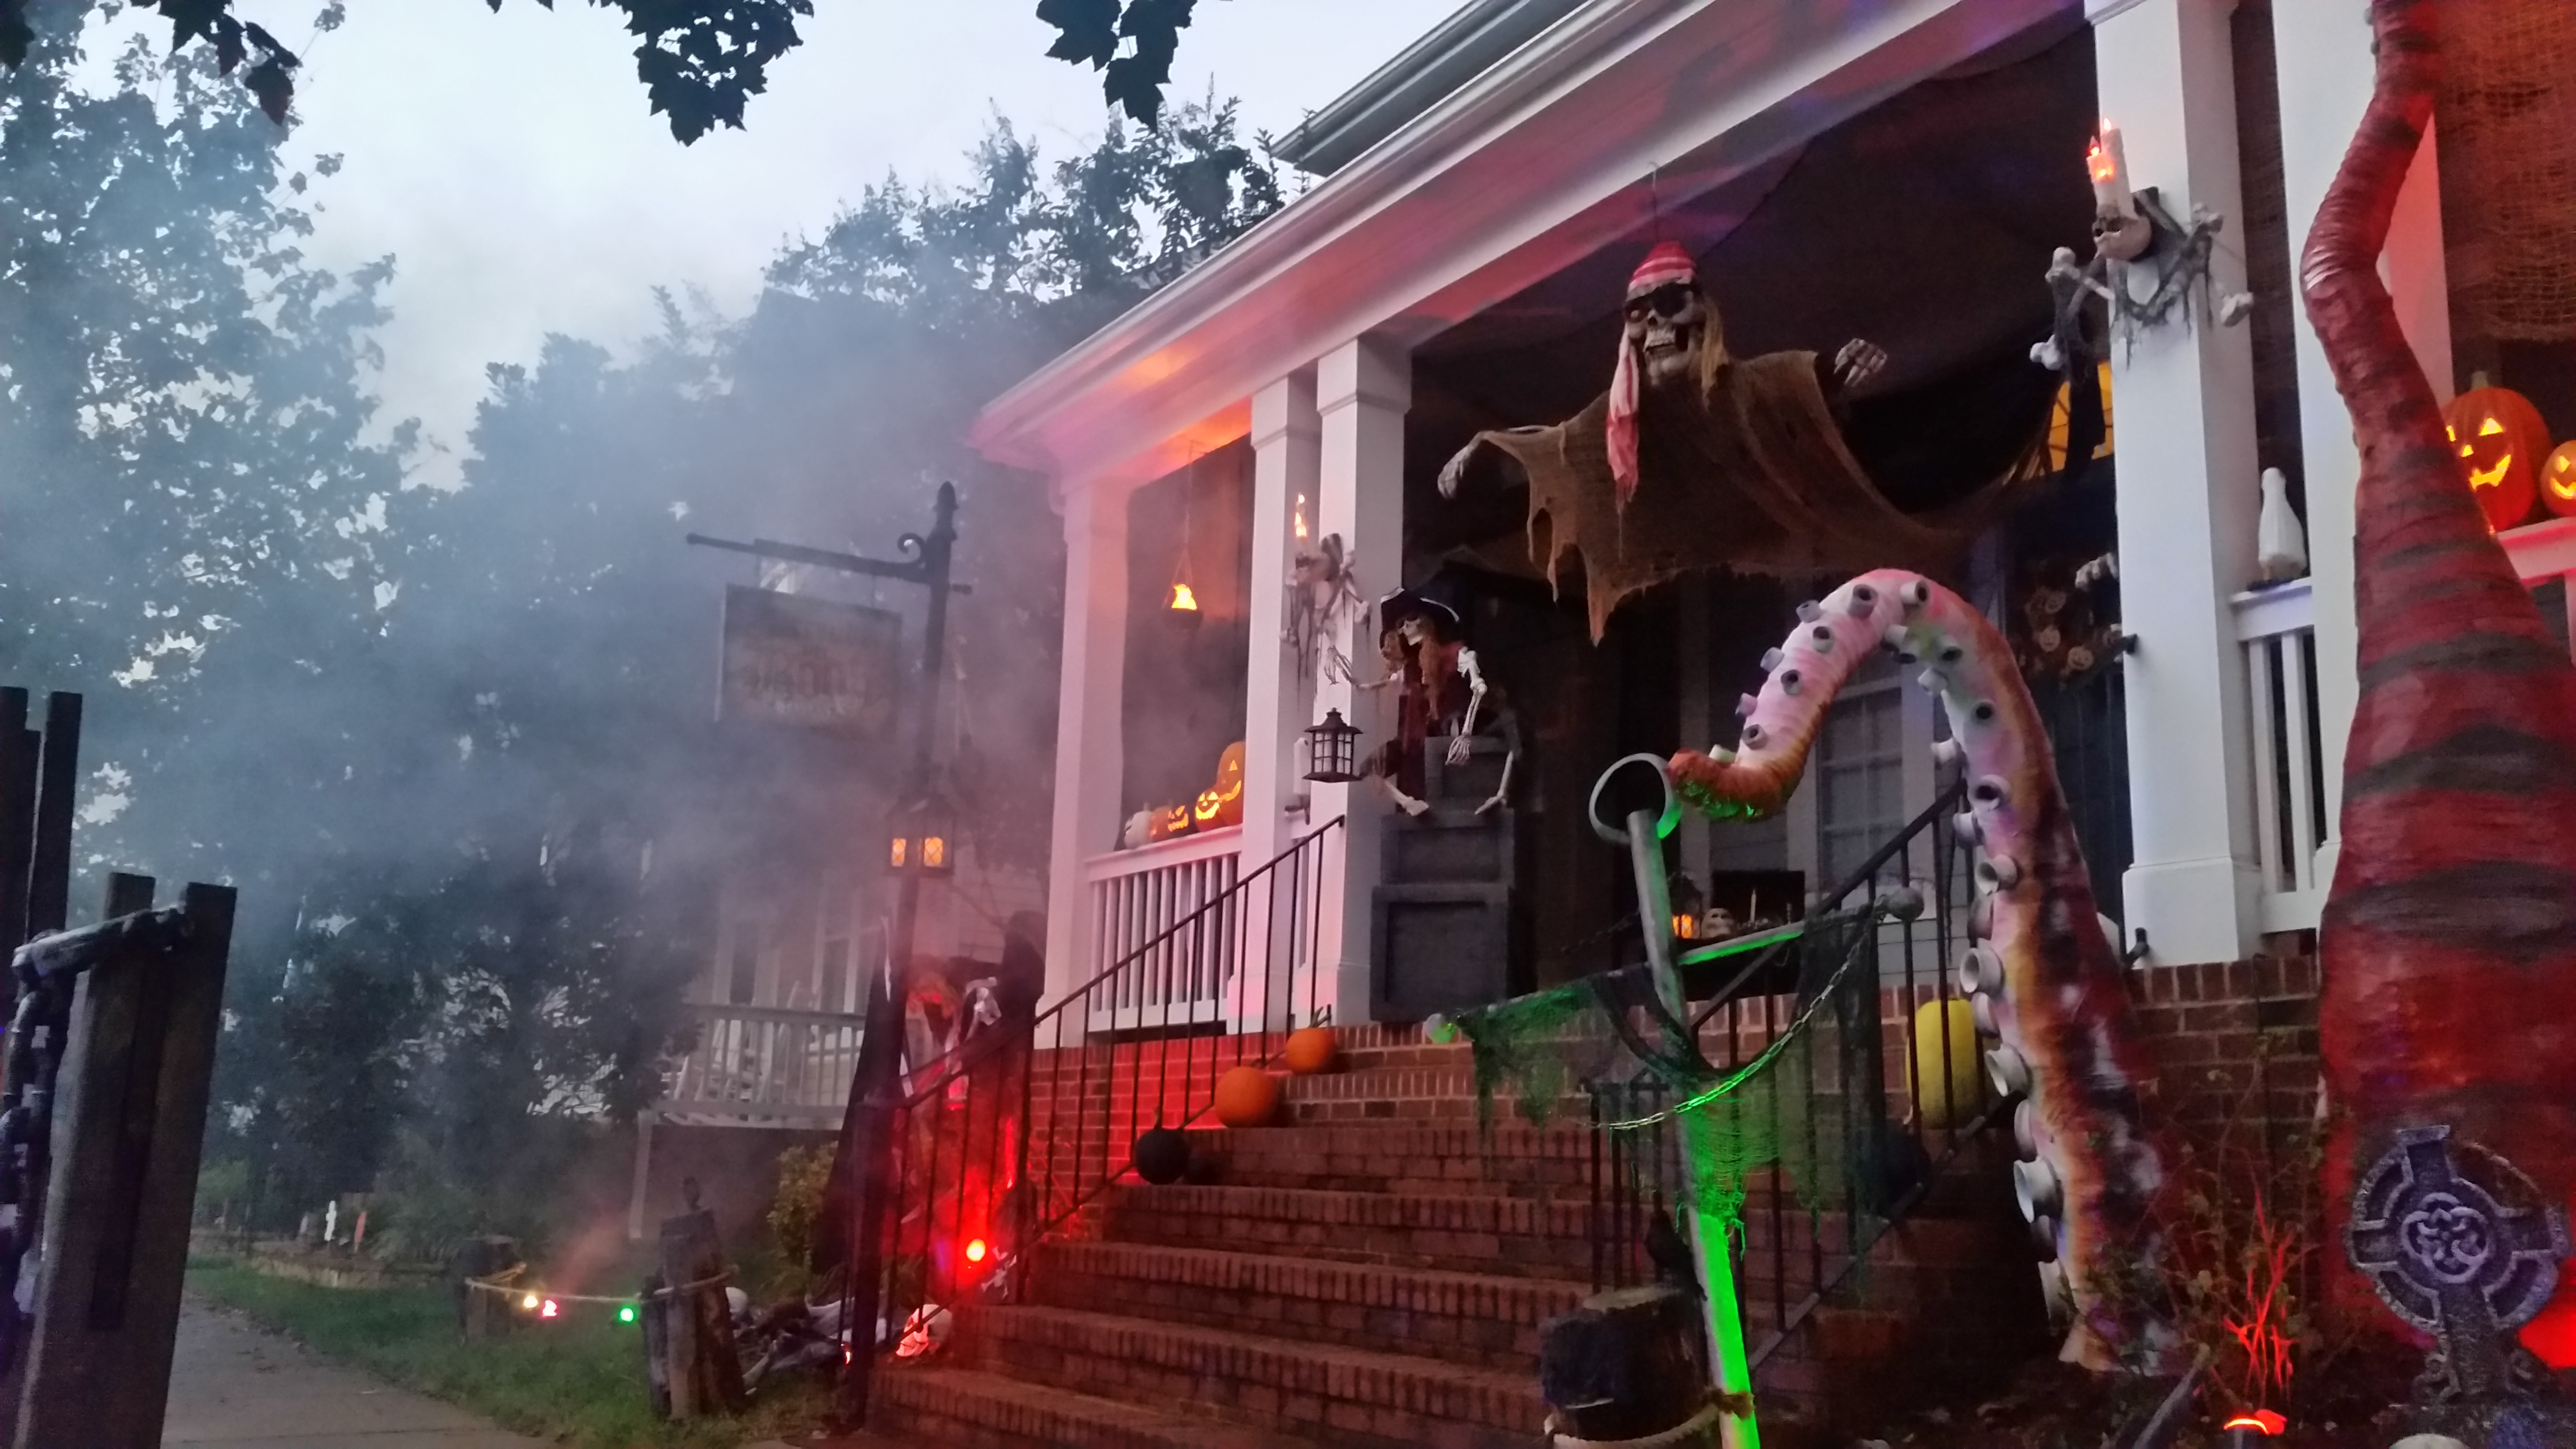 Pirate Halloween Decorations